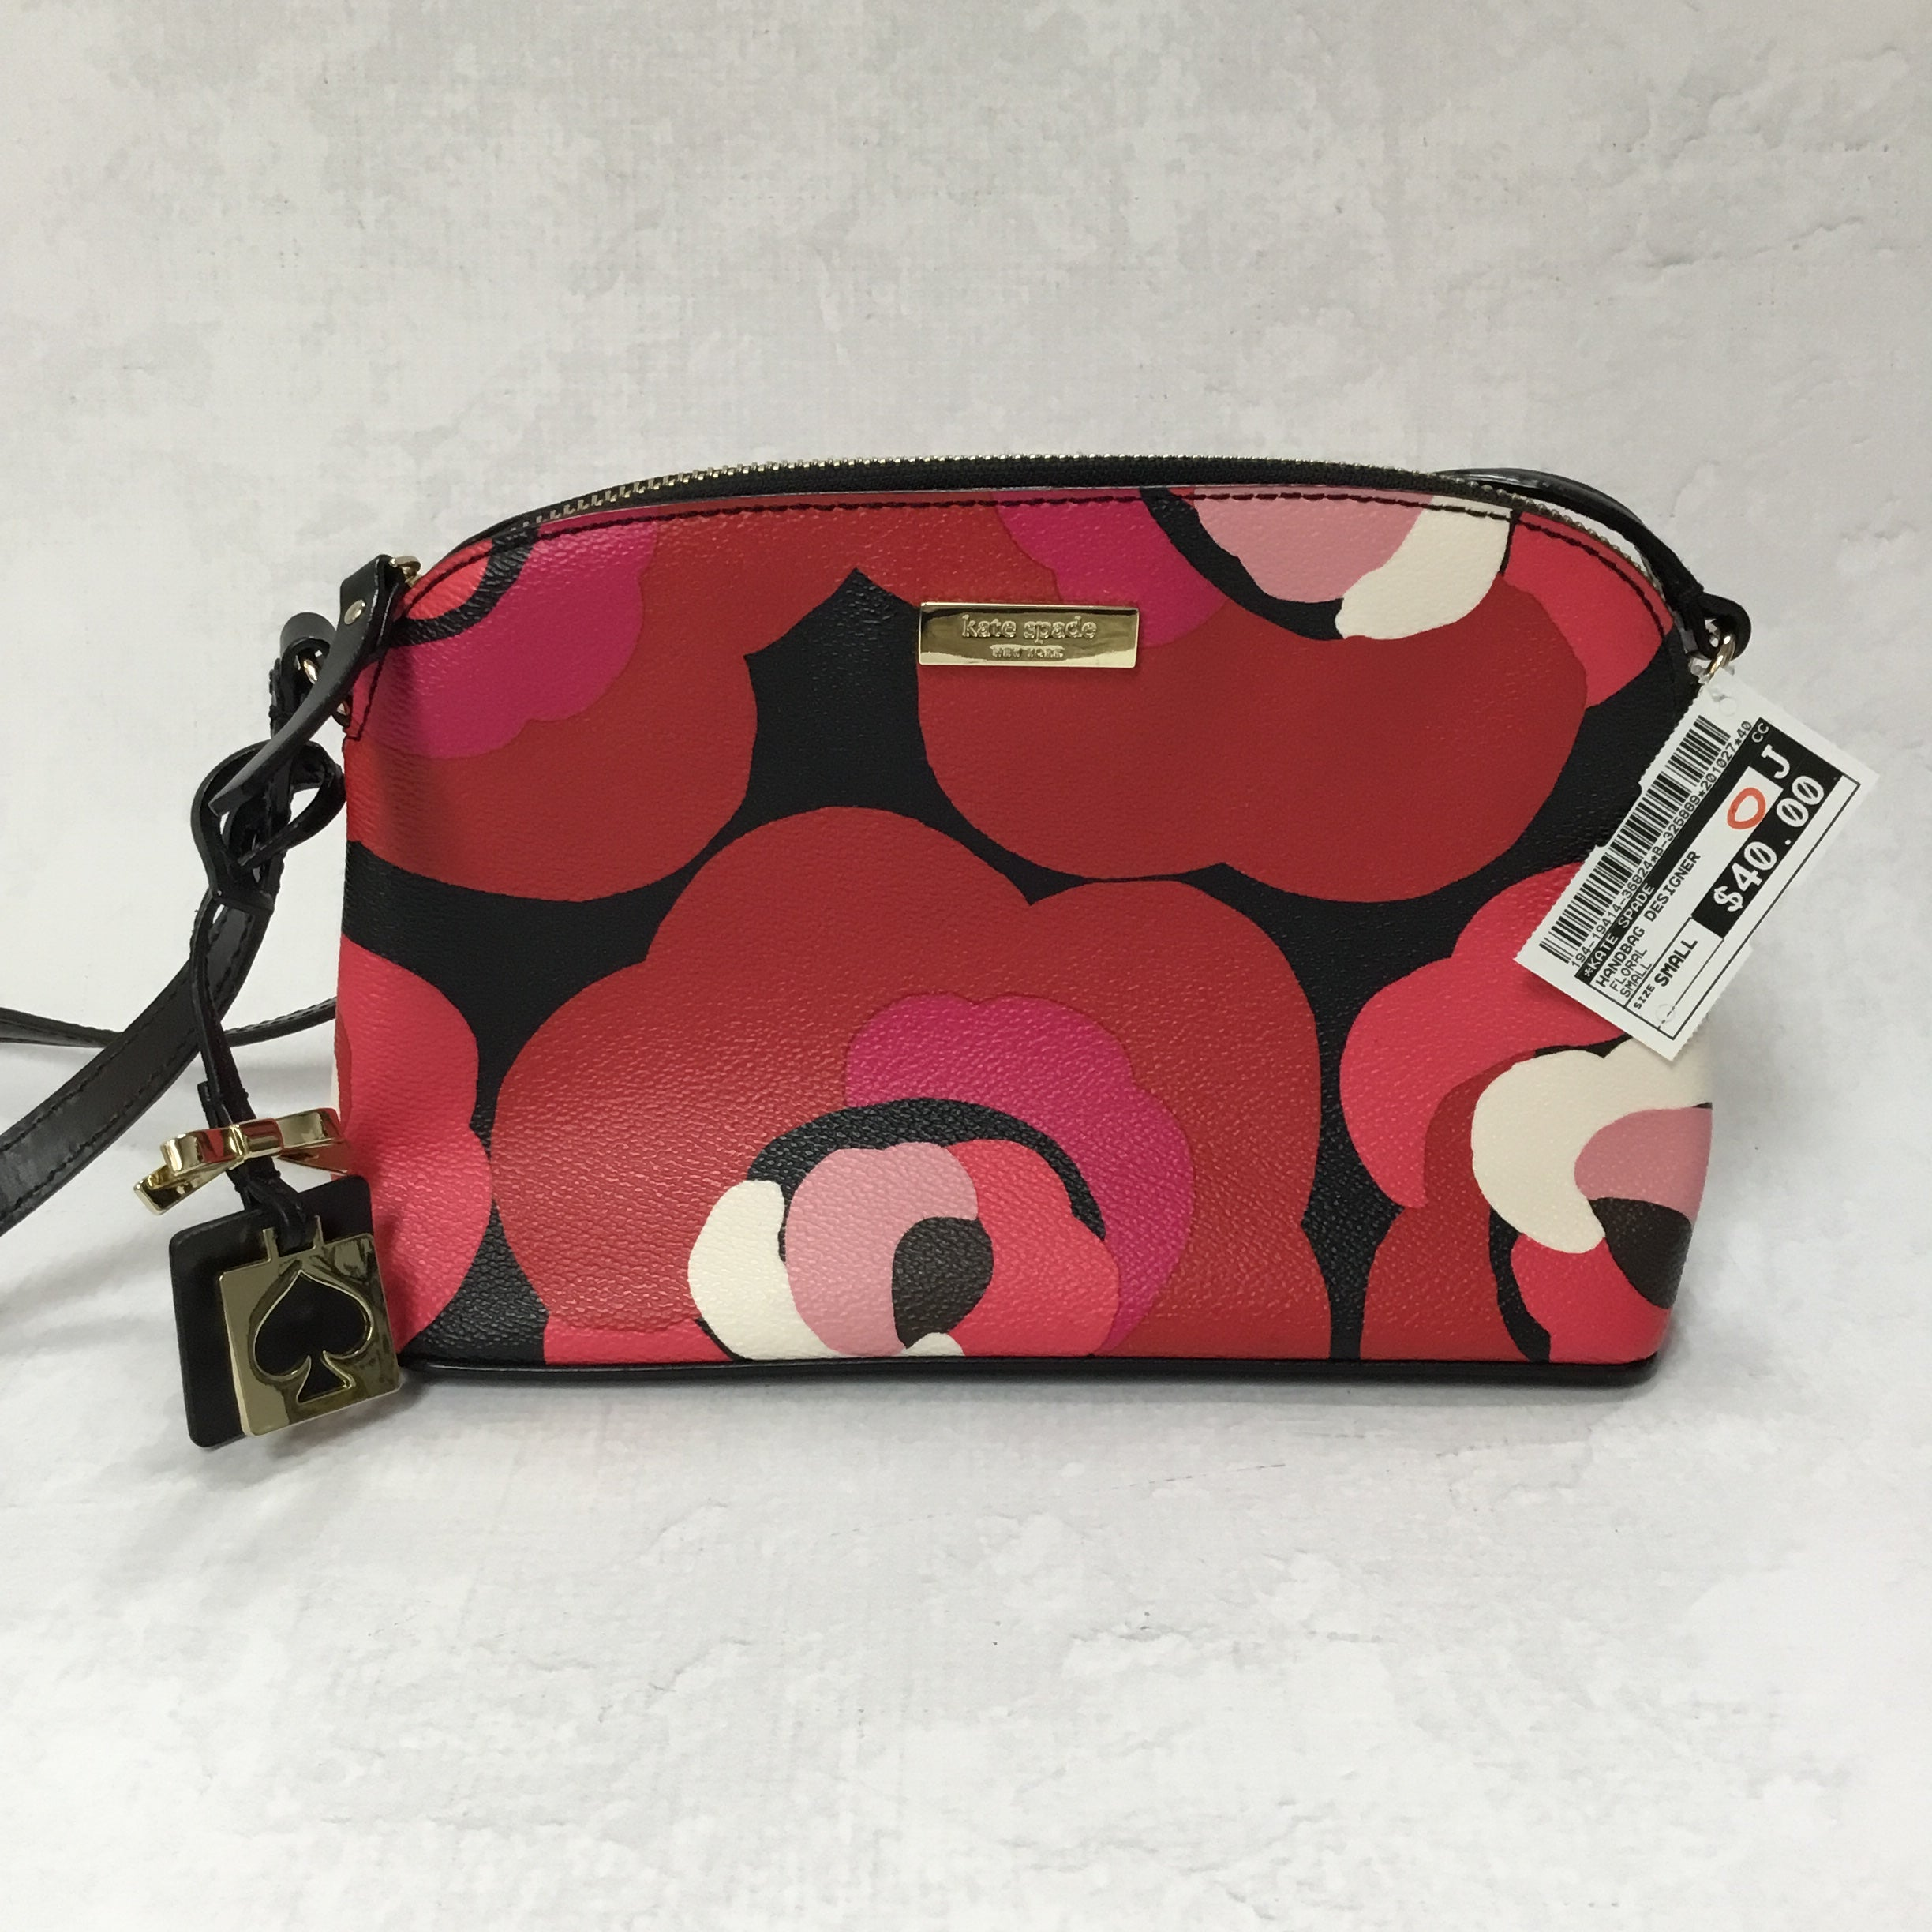 Primary Photo - BRAND: KATE SPADE <BR>STYLE: HANDBAG DESIGNER <BR>COLOR: FLORAL <BR>SIZE: SMALL <BR>SKU: 194-19414-36824<BR>9X6.5X3